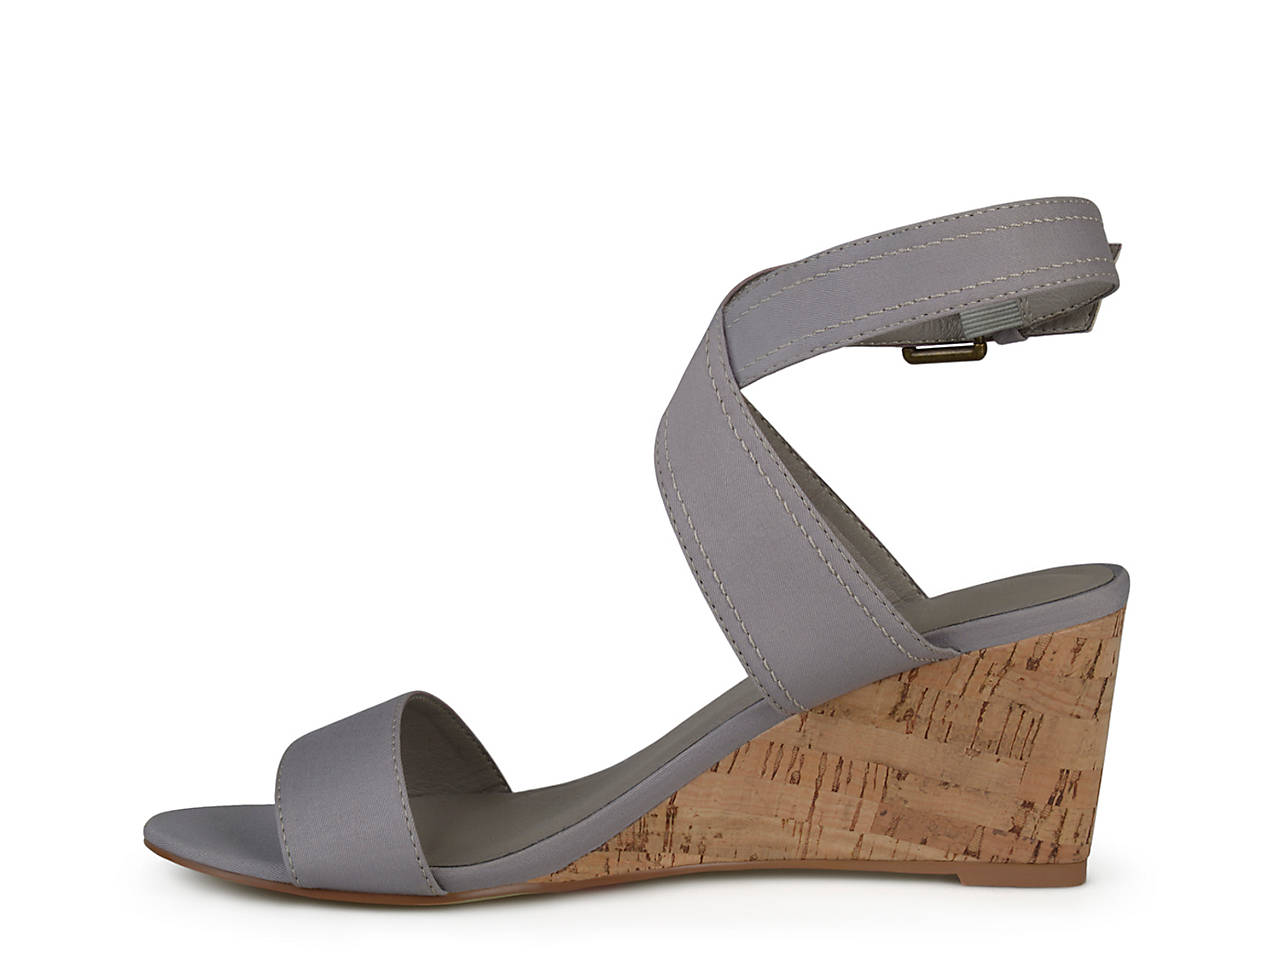 Journee Collection Kaylee ... Women's Wedge Sandals big discount sale online free shipping manchester great sale YaQb2iLI